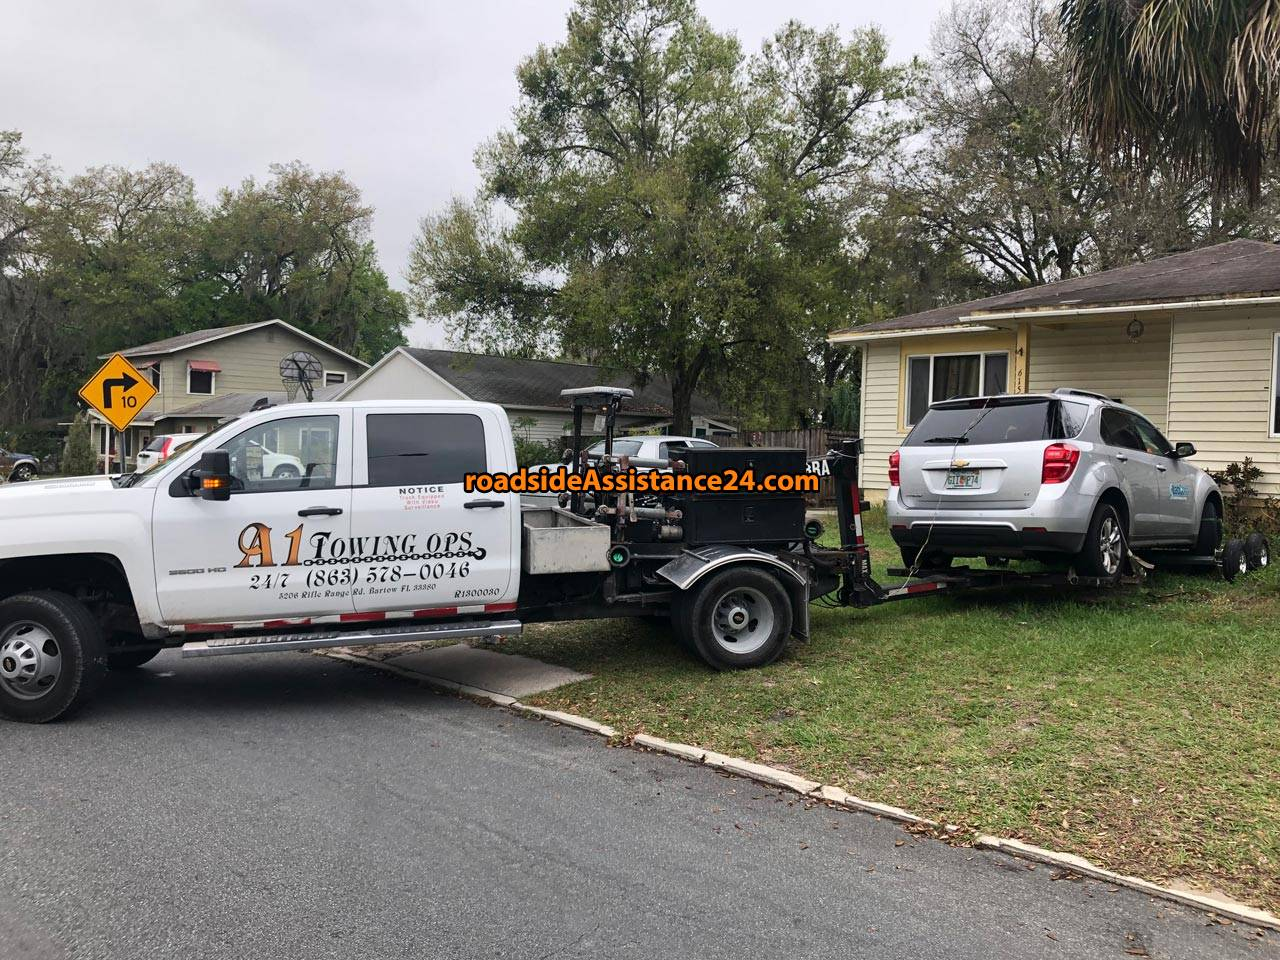 A1 Towing Ops LLC